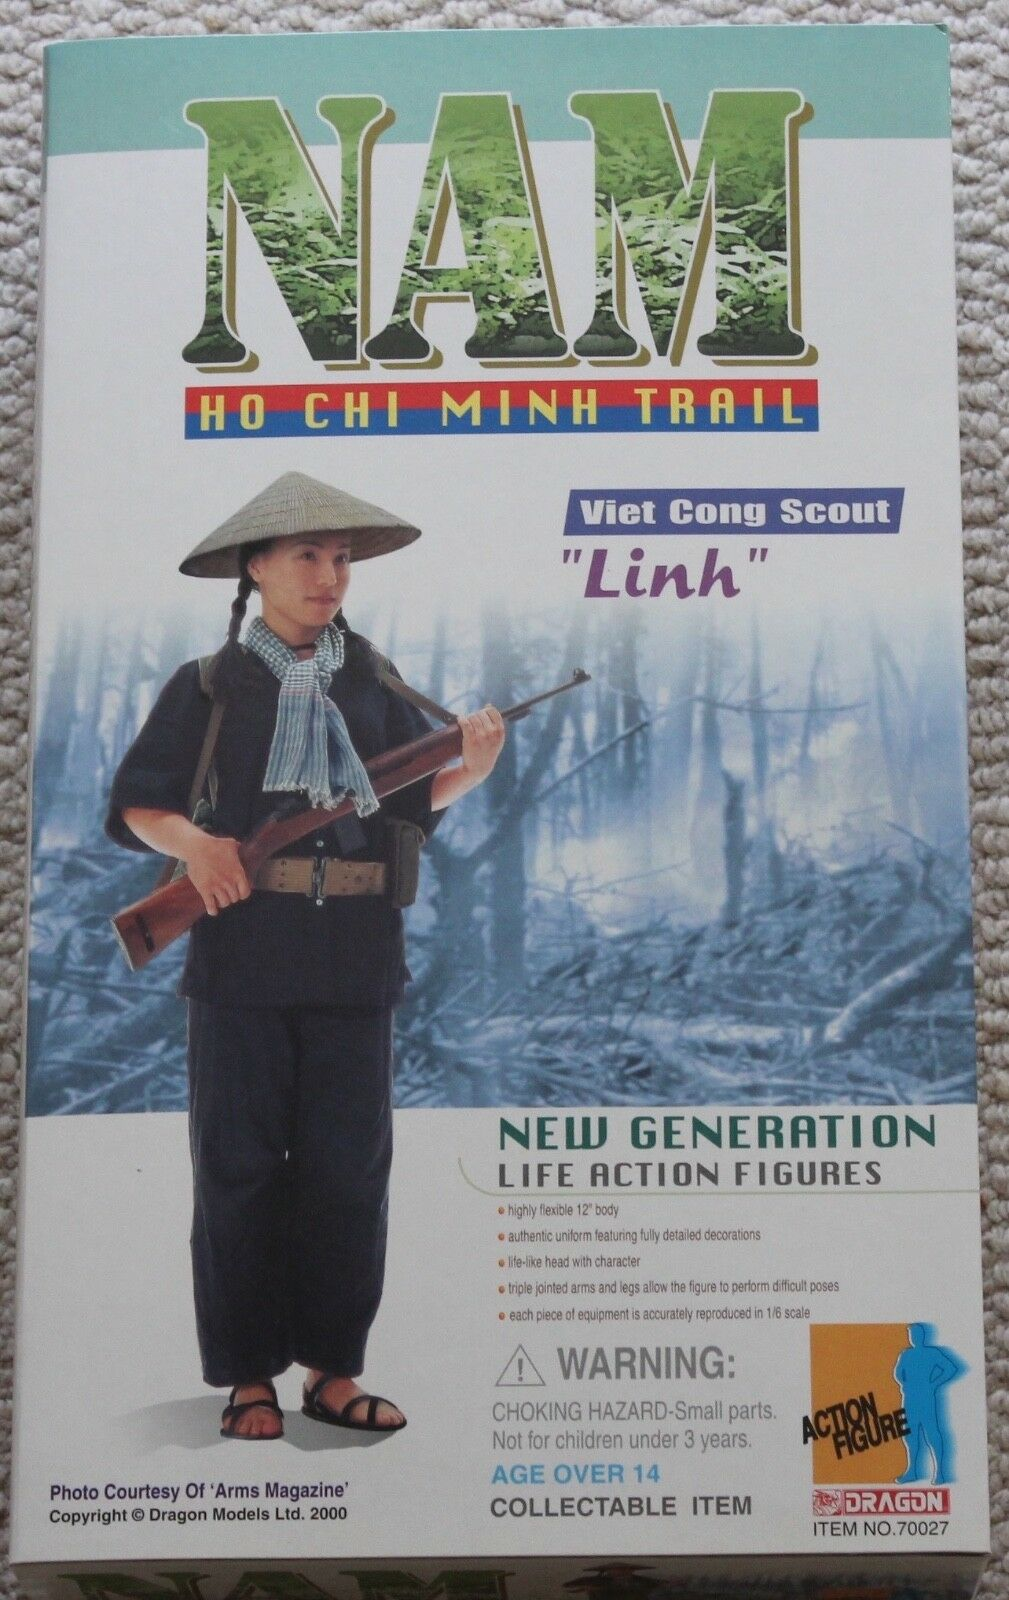 Dragon action figure nam linh viet cong scout 70027 1 6 12'' hot toy ww11 did